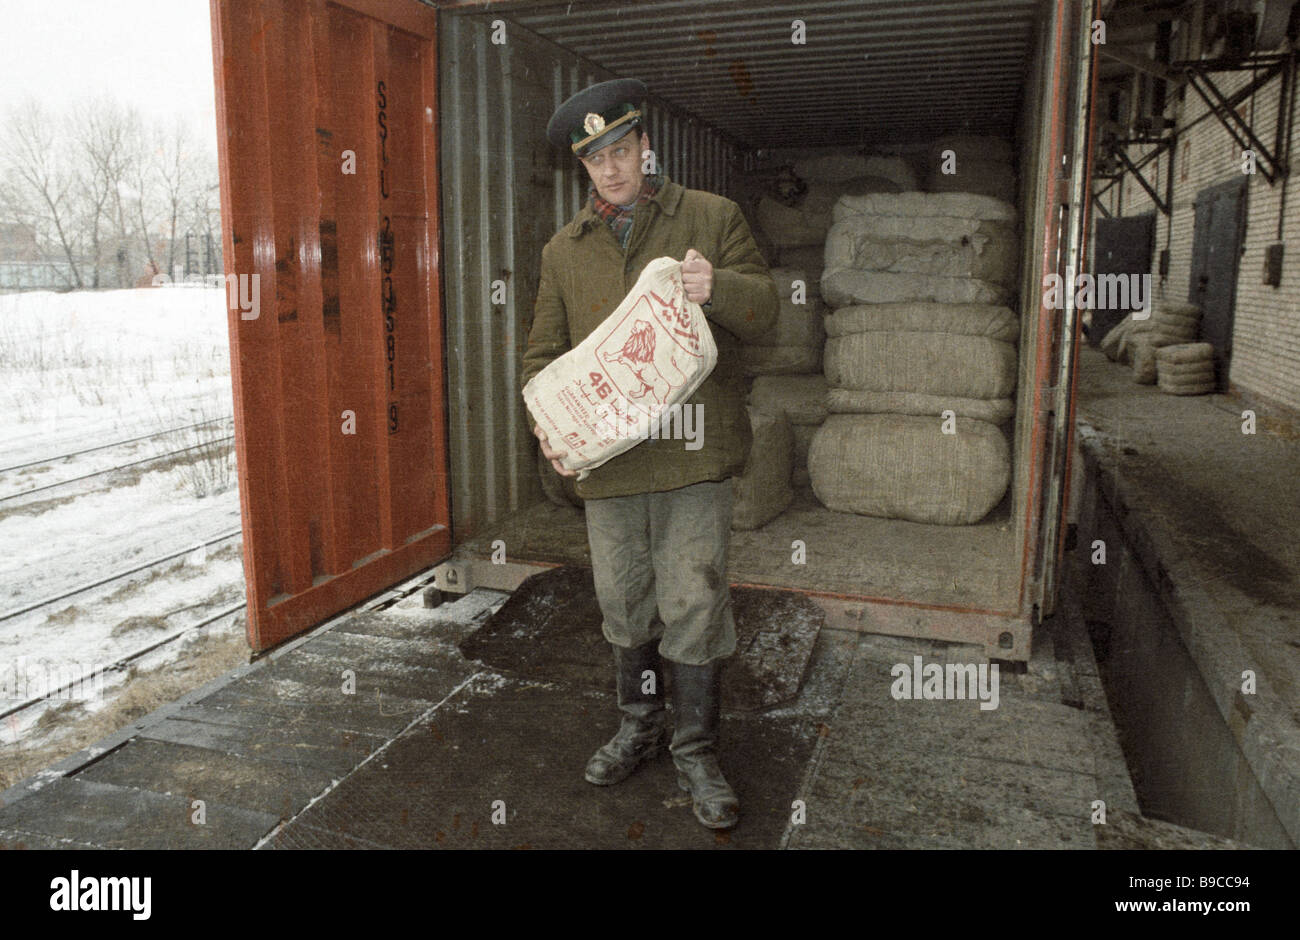 Customs officer displays drug contraband - Stock Image